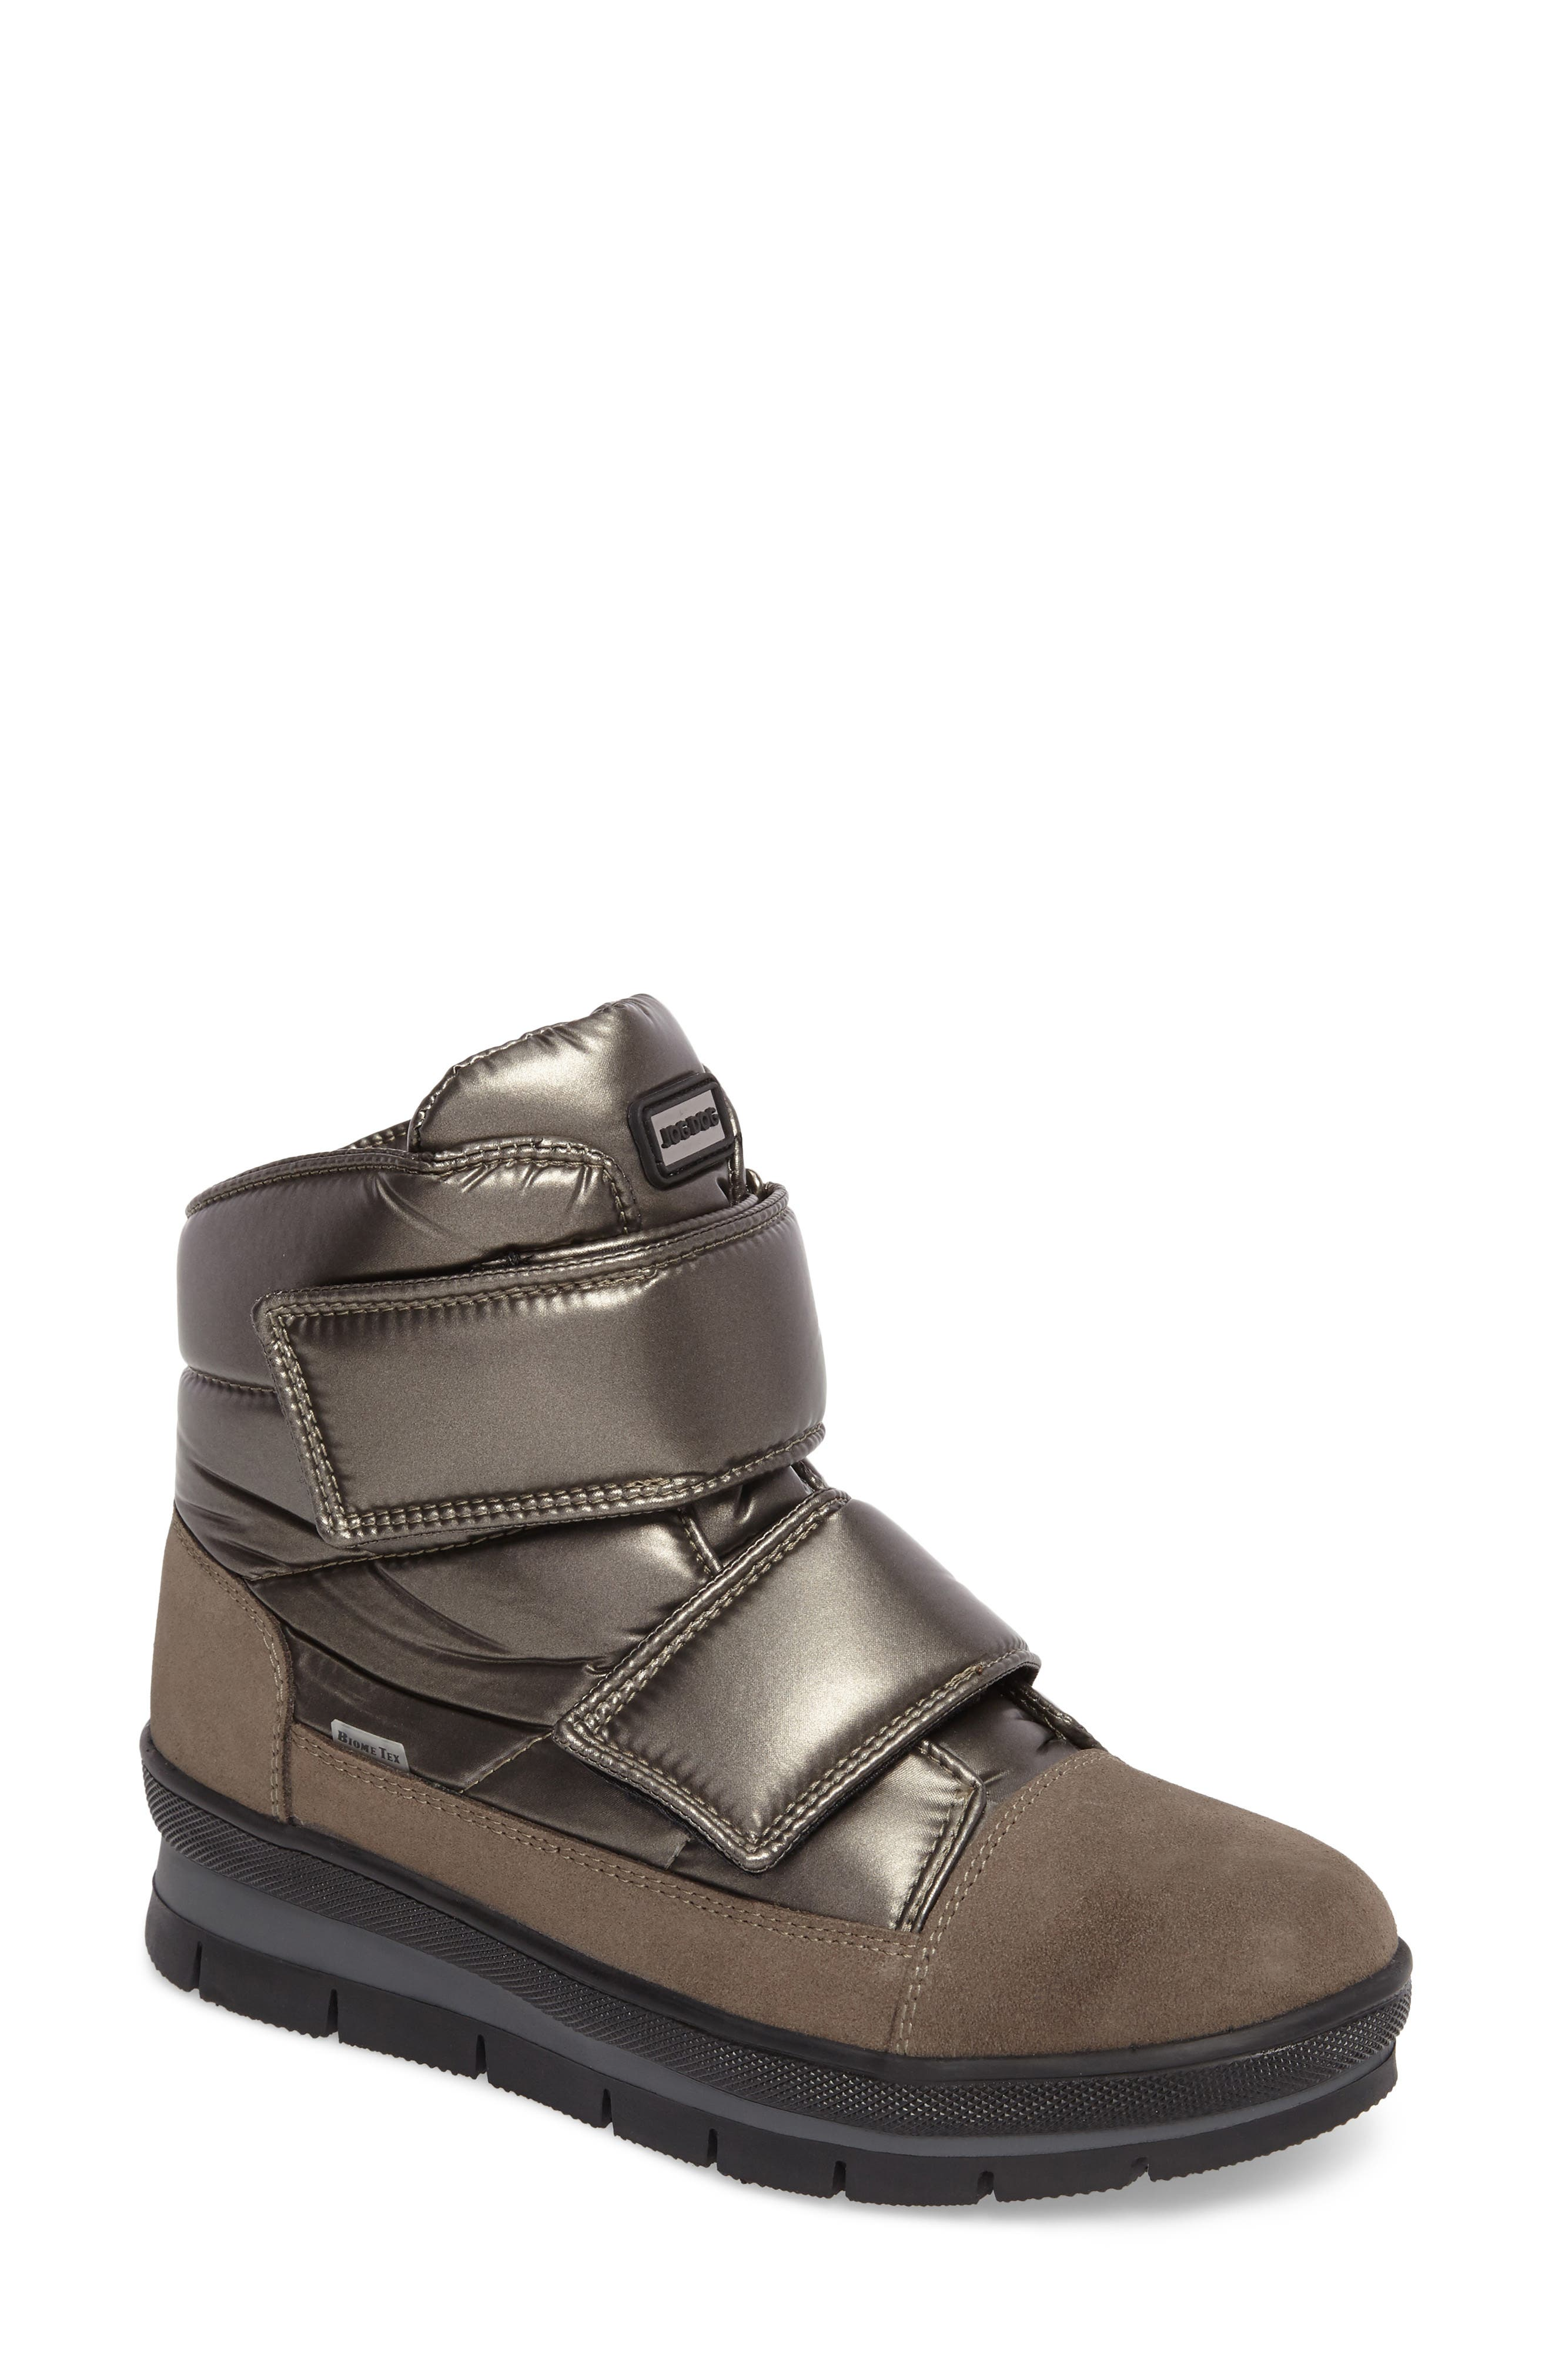 Gran Sasso Waterproof Boot,                         Main,                         color, PEWTER BALTICO